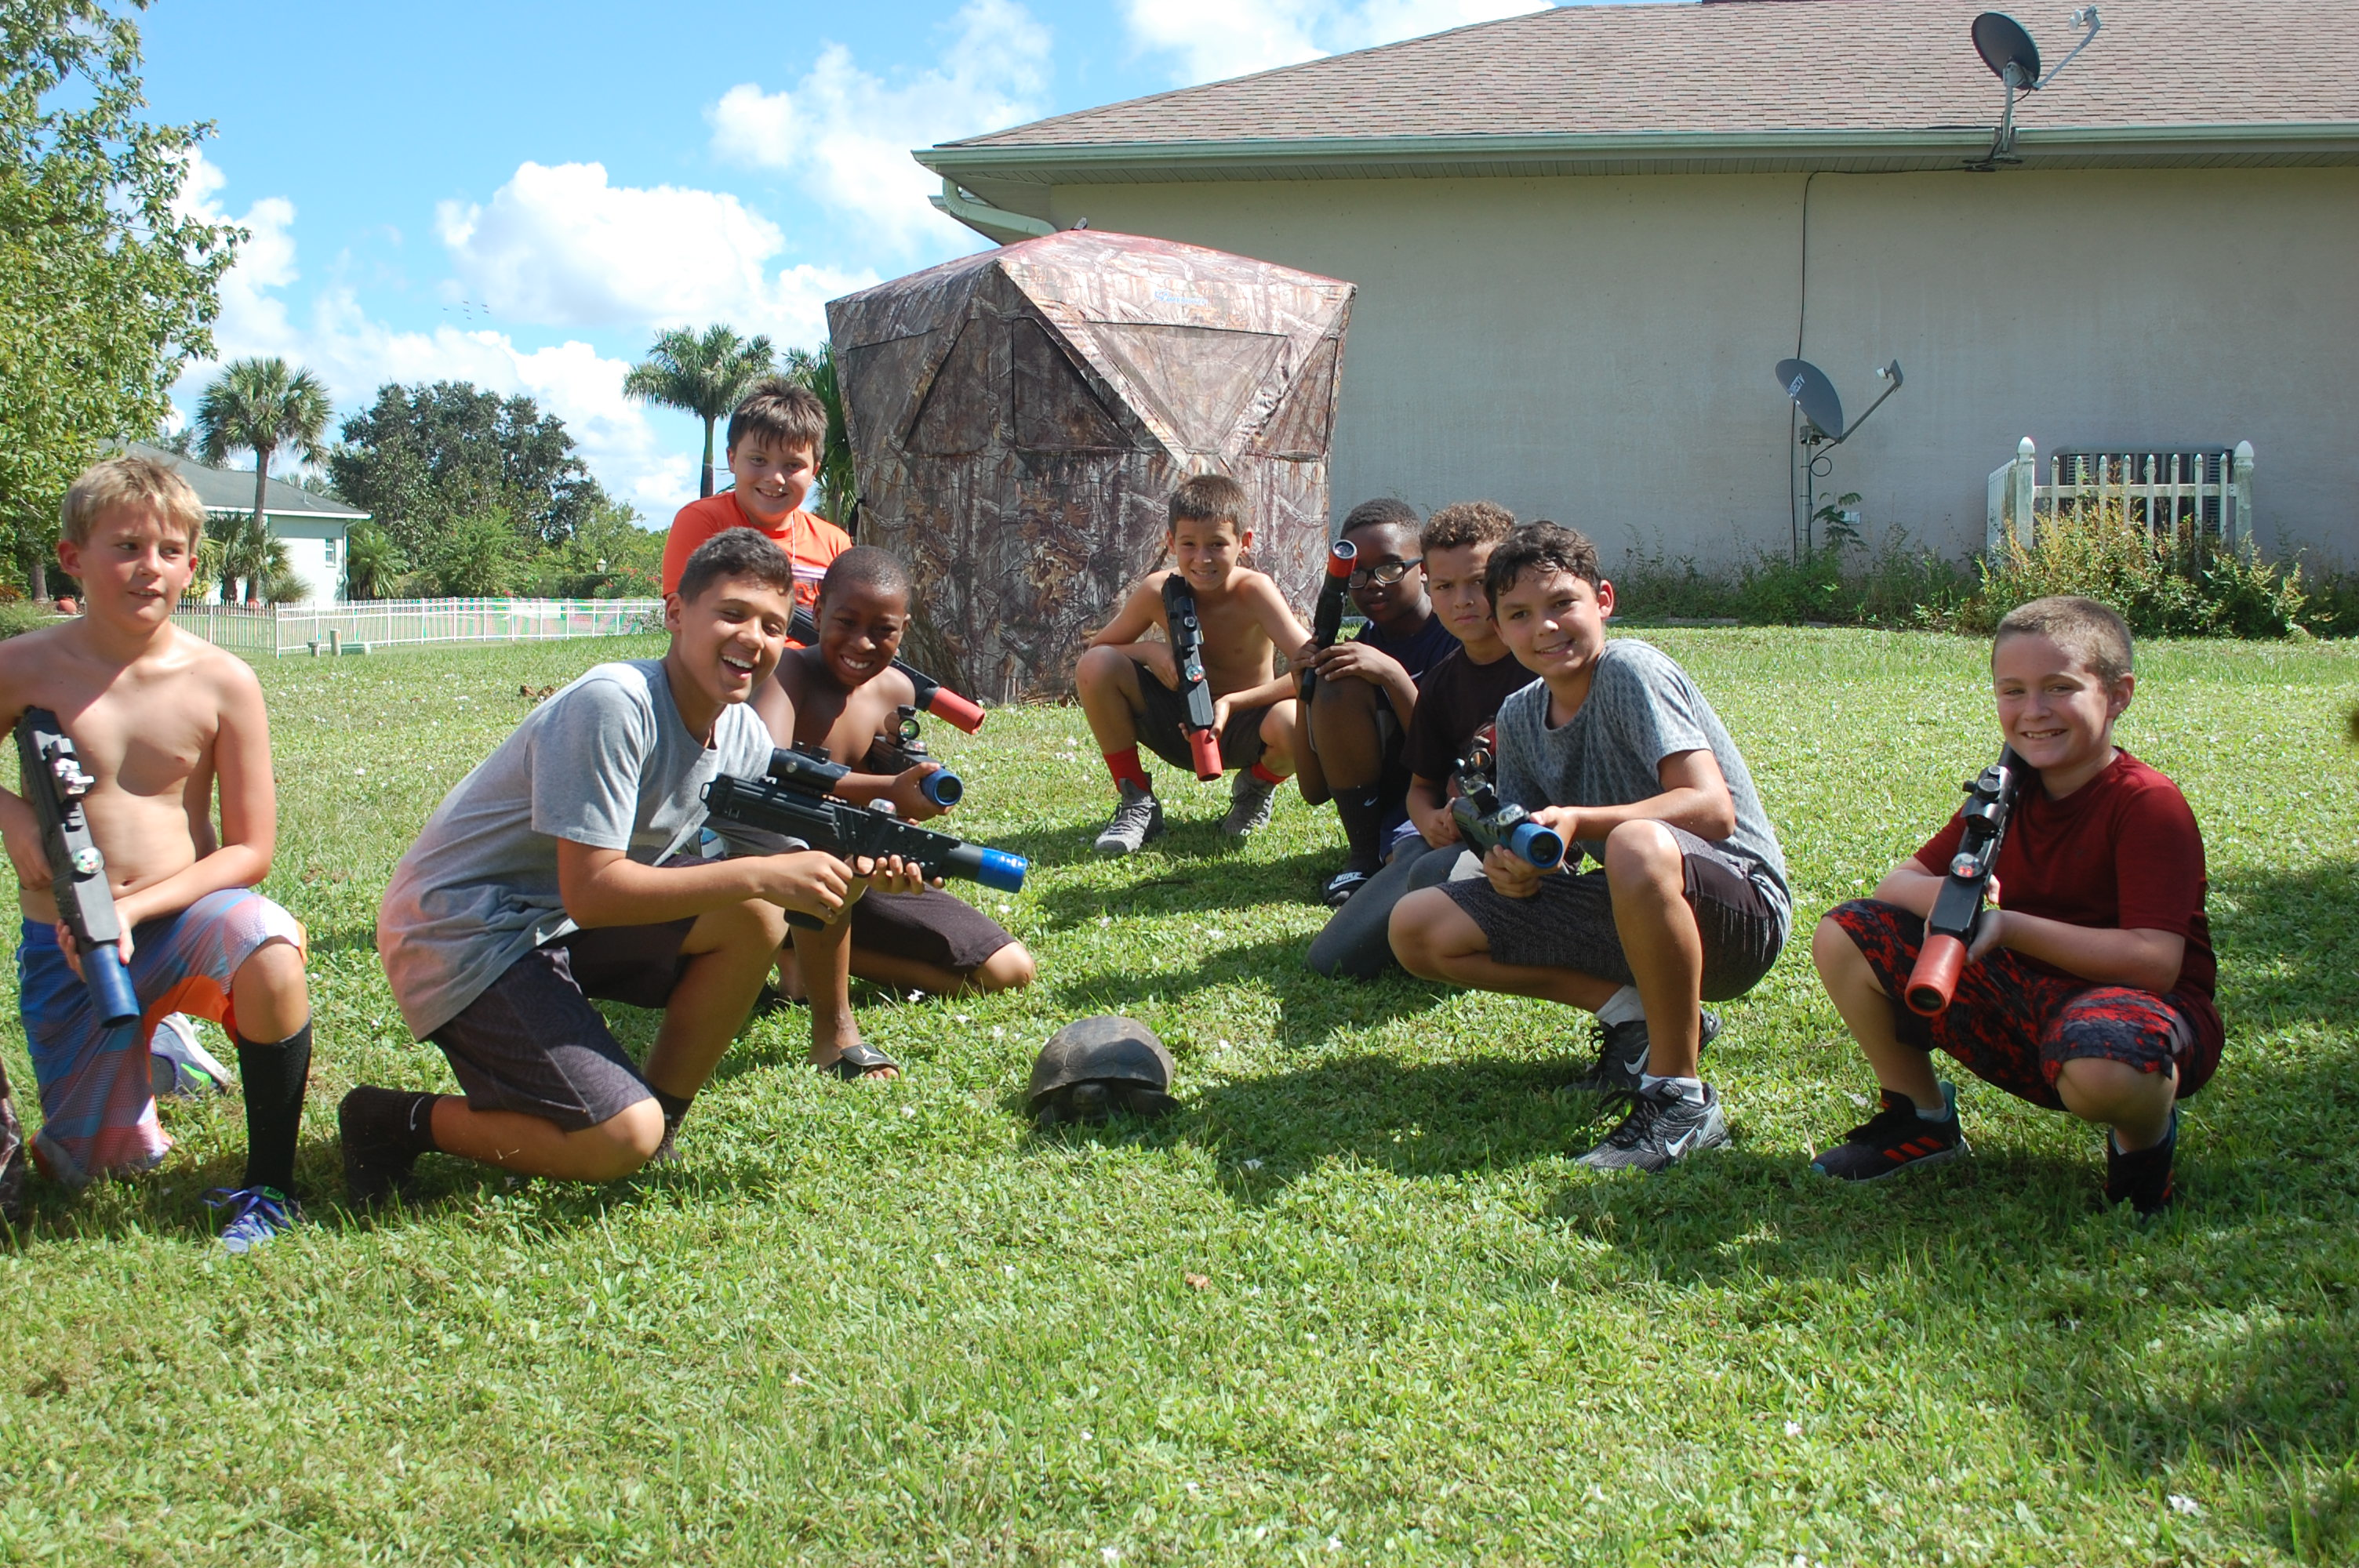 Mobile Laser Tag in Punta Gorda, FL